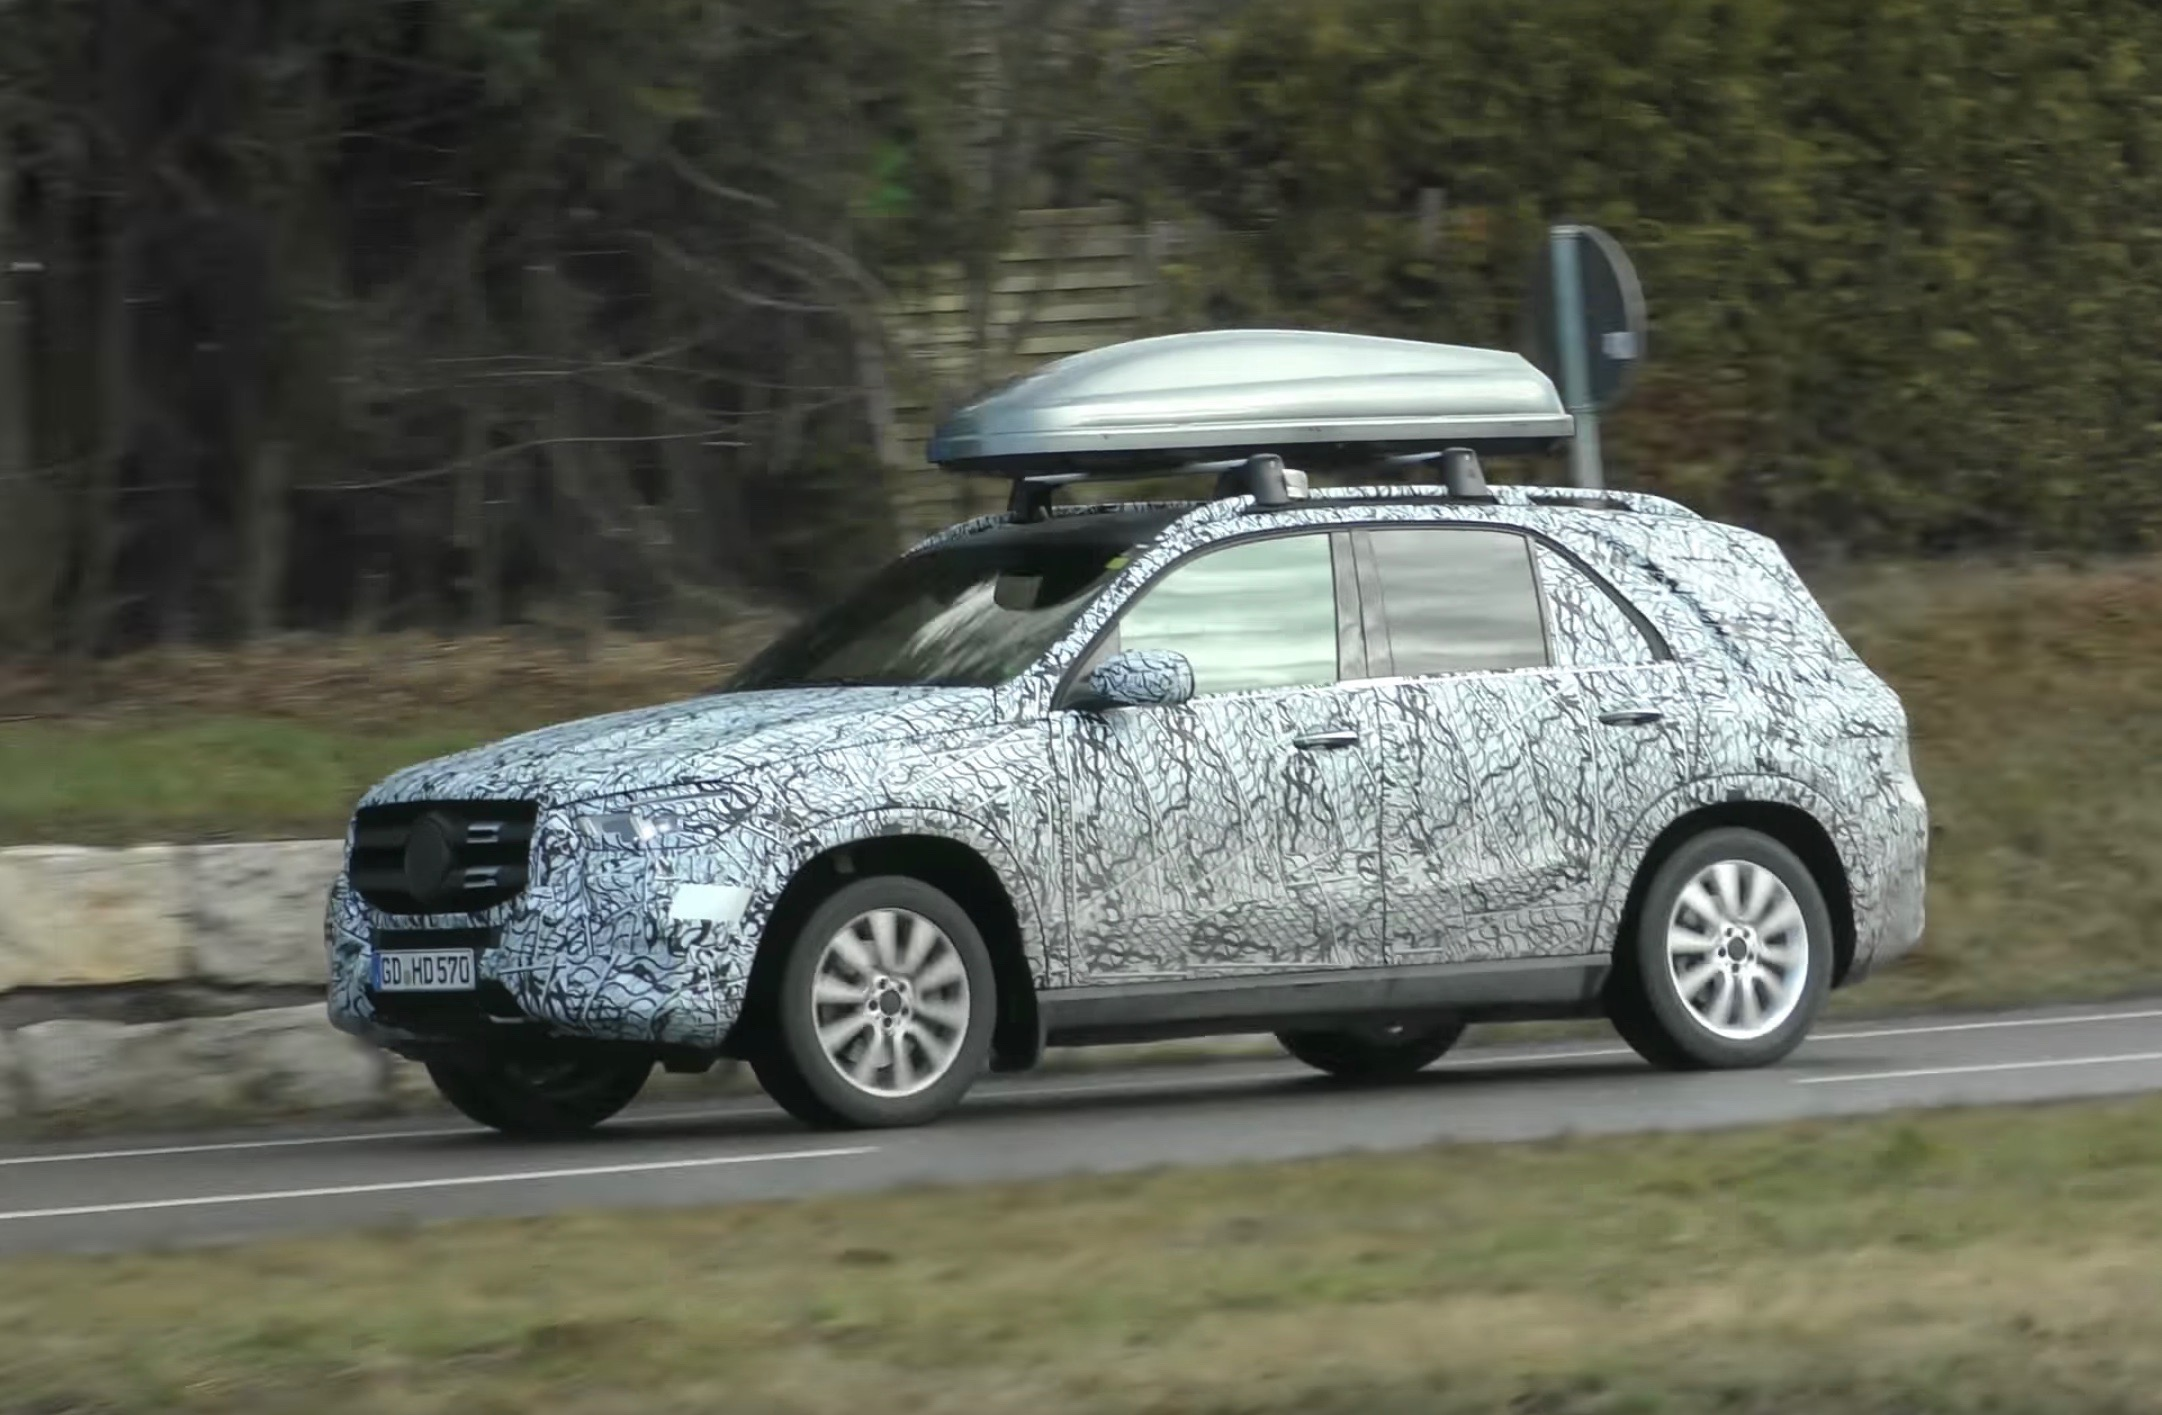 2019 mercedes benz gle spotted with less camouflage video performancedrive. Black Bedroom Furniture Sets. Home Design Ideas